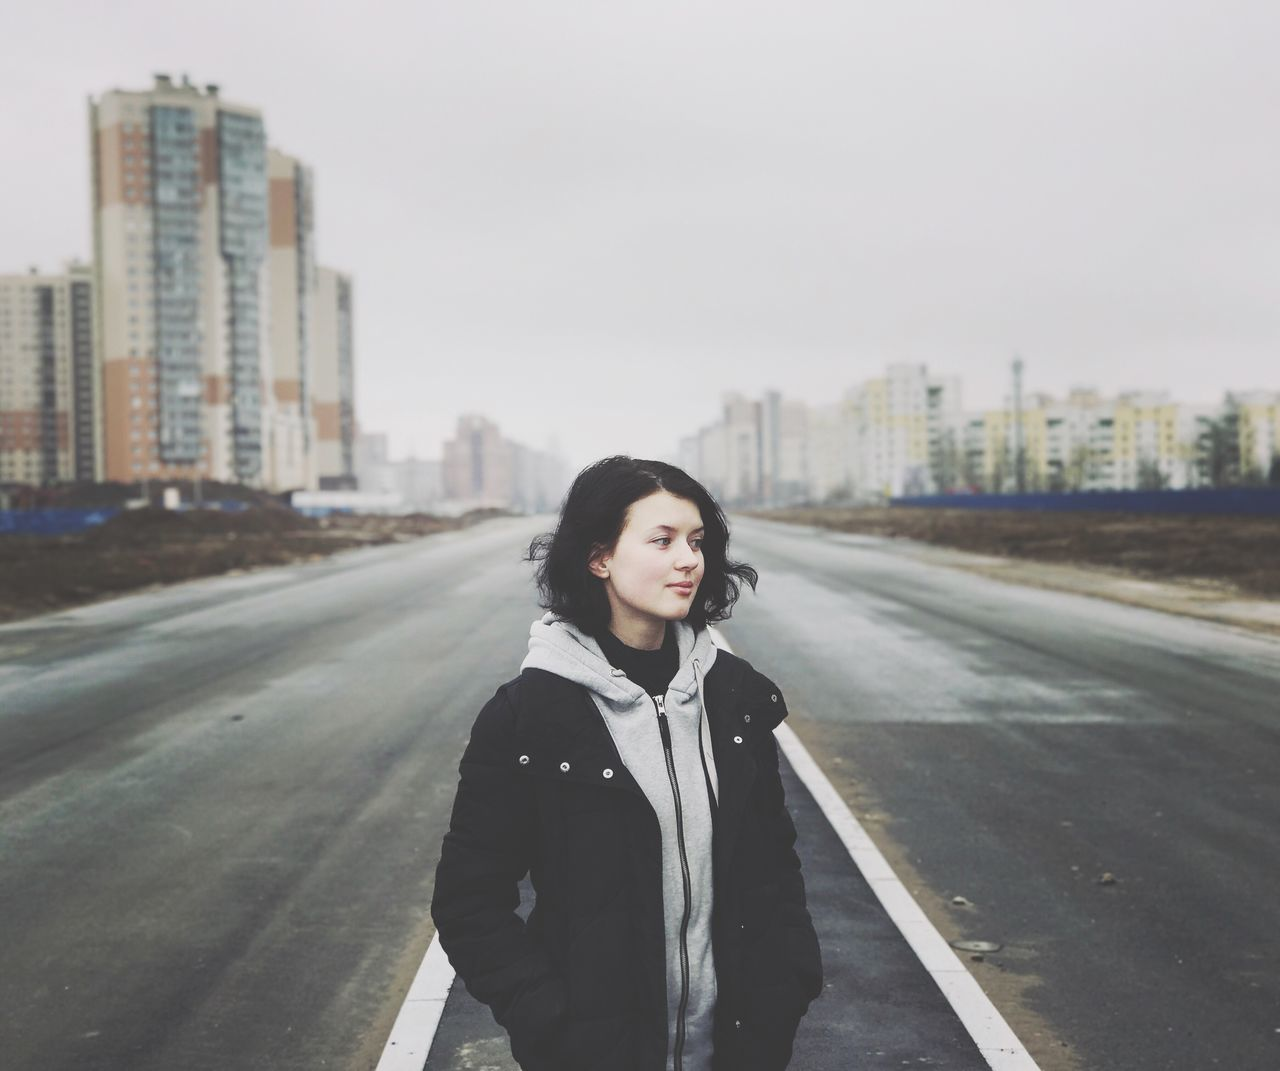 BEAUTIFUL WOMAN STANDING ON ROAD IN CITY AGAINST CLEAR SKY